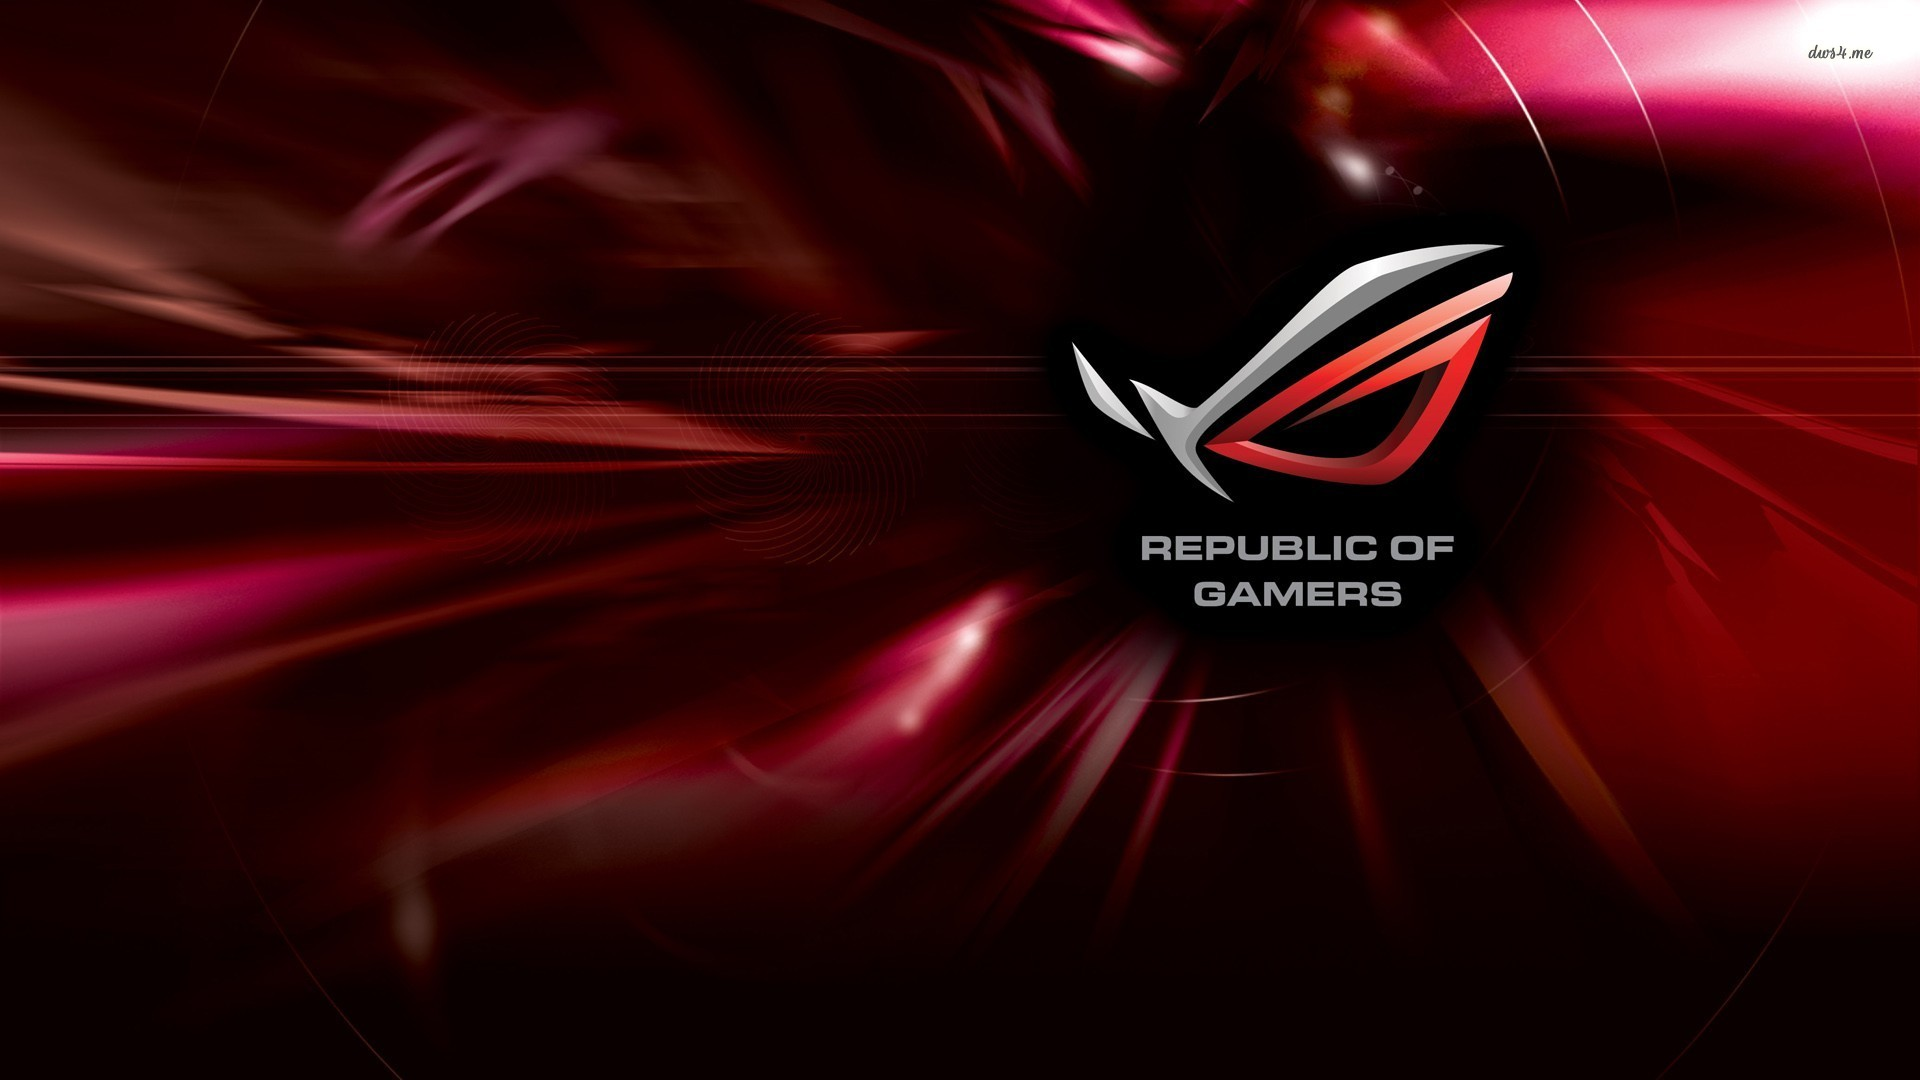 asus wallpapers 18   1920 x 1080